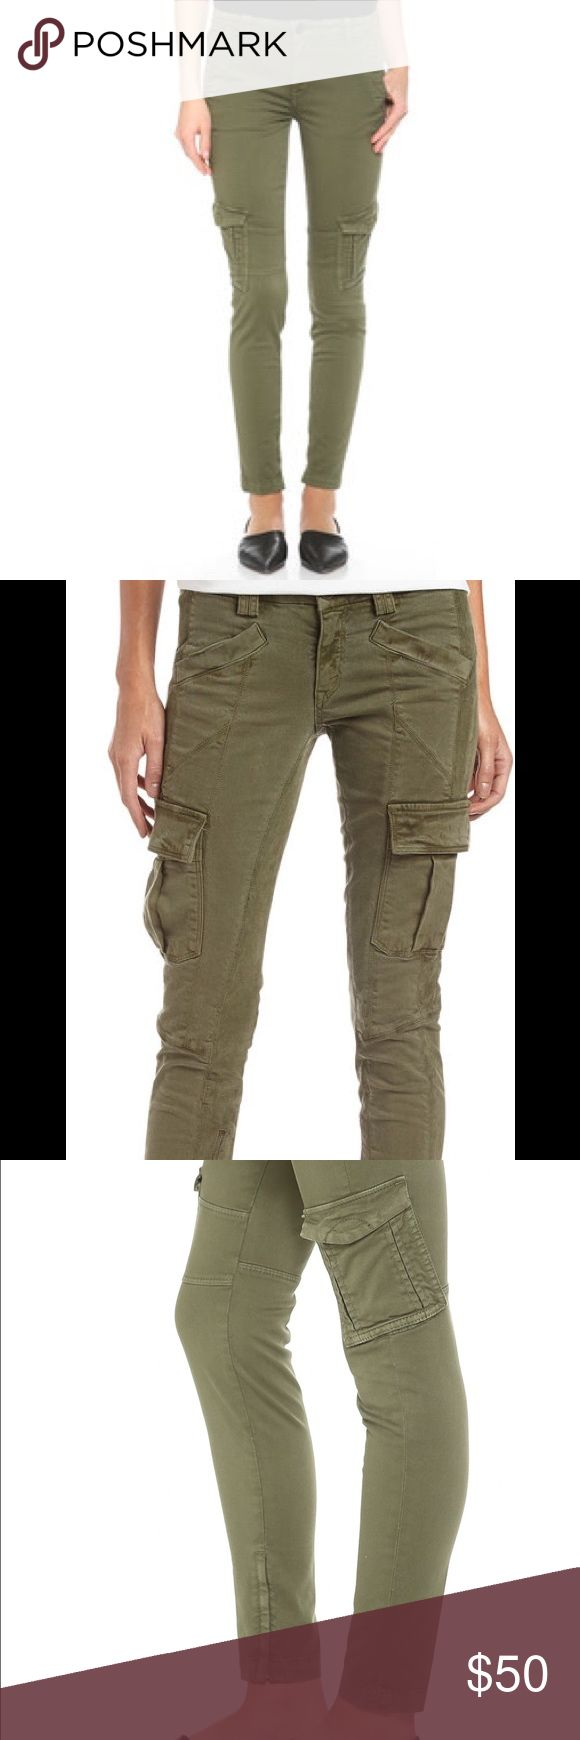 Vince Cargo Jeans Olive green, Vince cargo skinny jeans. Super trendy and cute! Vince Jeans Skinny